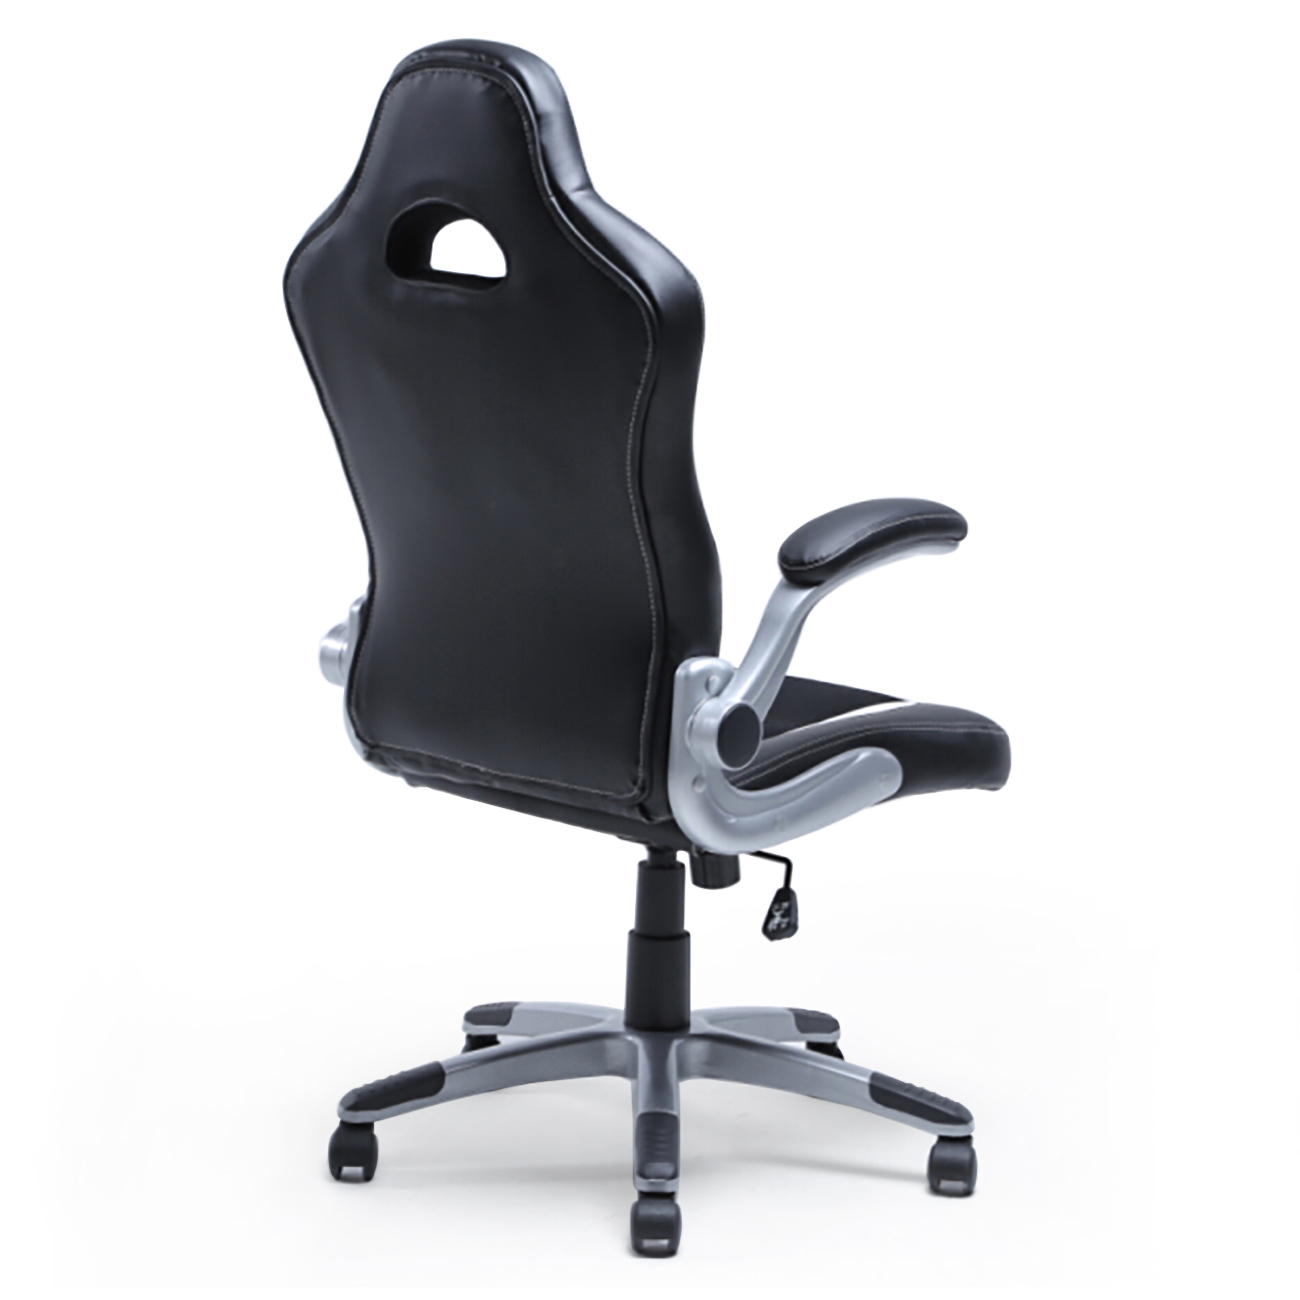 Racing Seat Office Chair Office Racing Chair Bucket Seat High Back Ergonomic Gaming